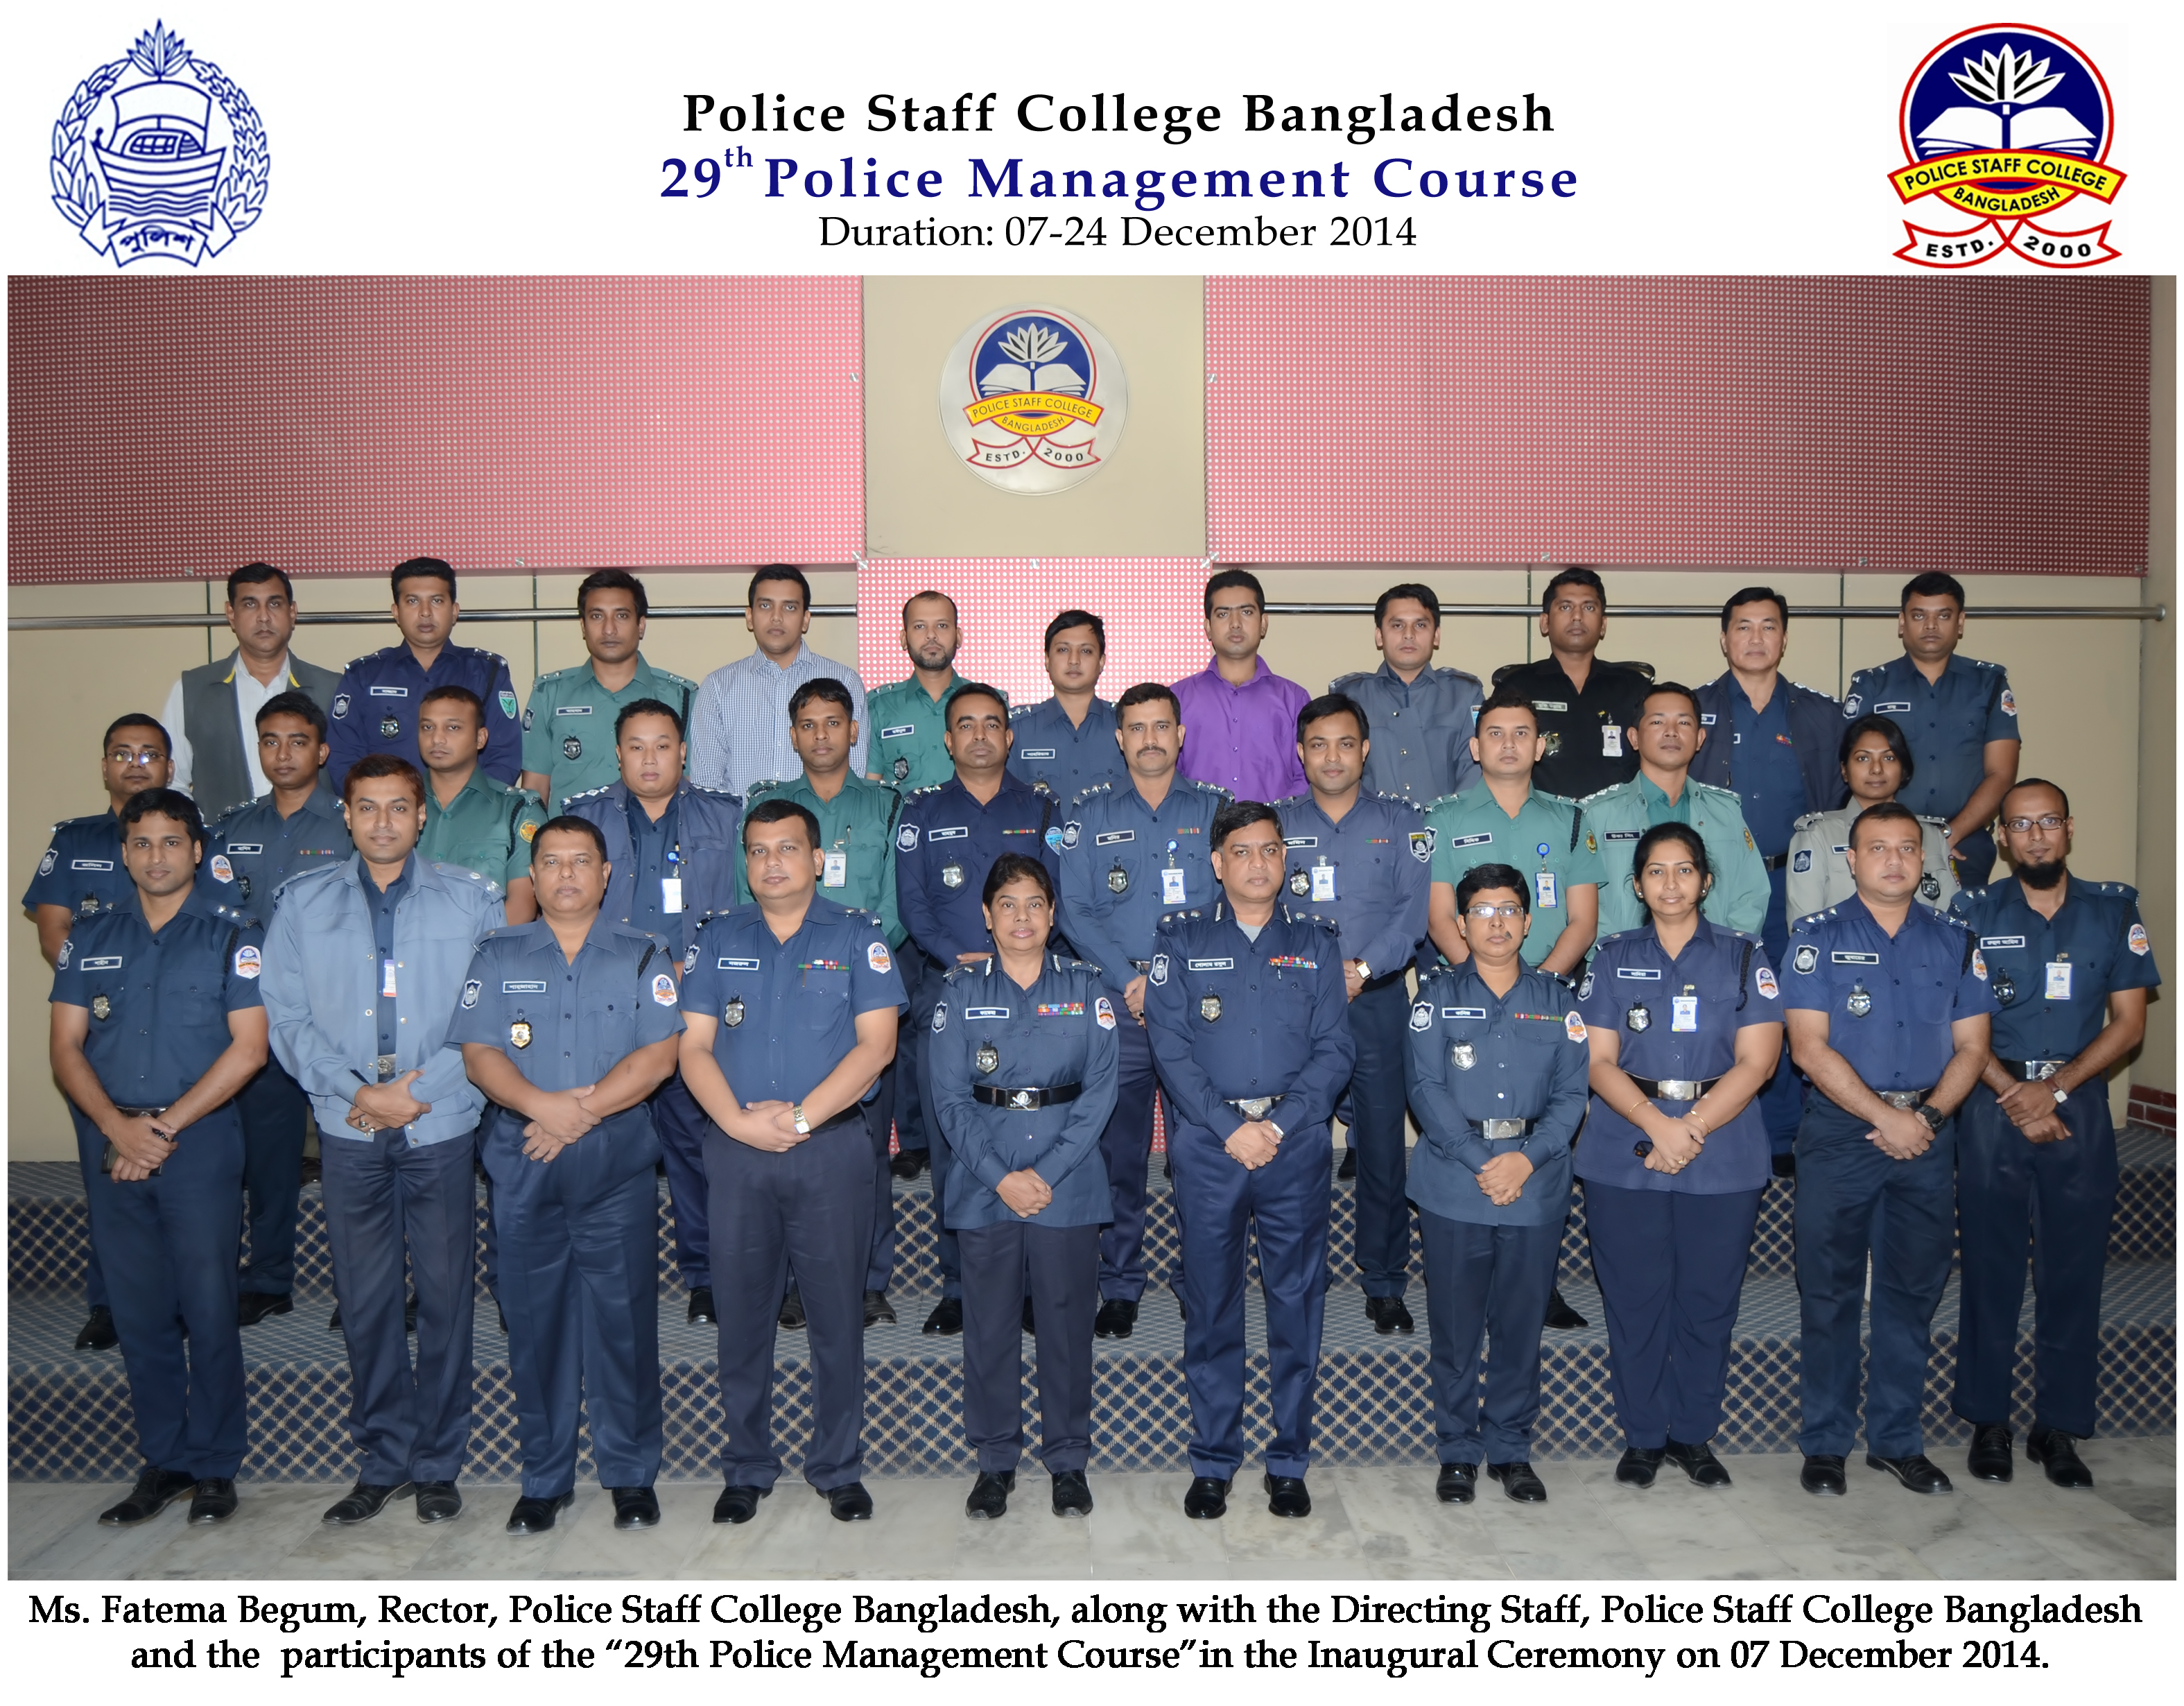 Participant of 29th Police Management Course.